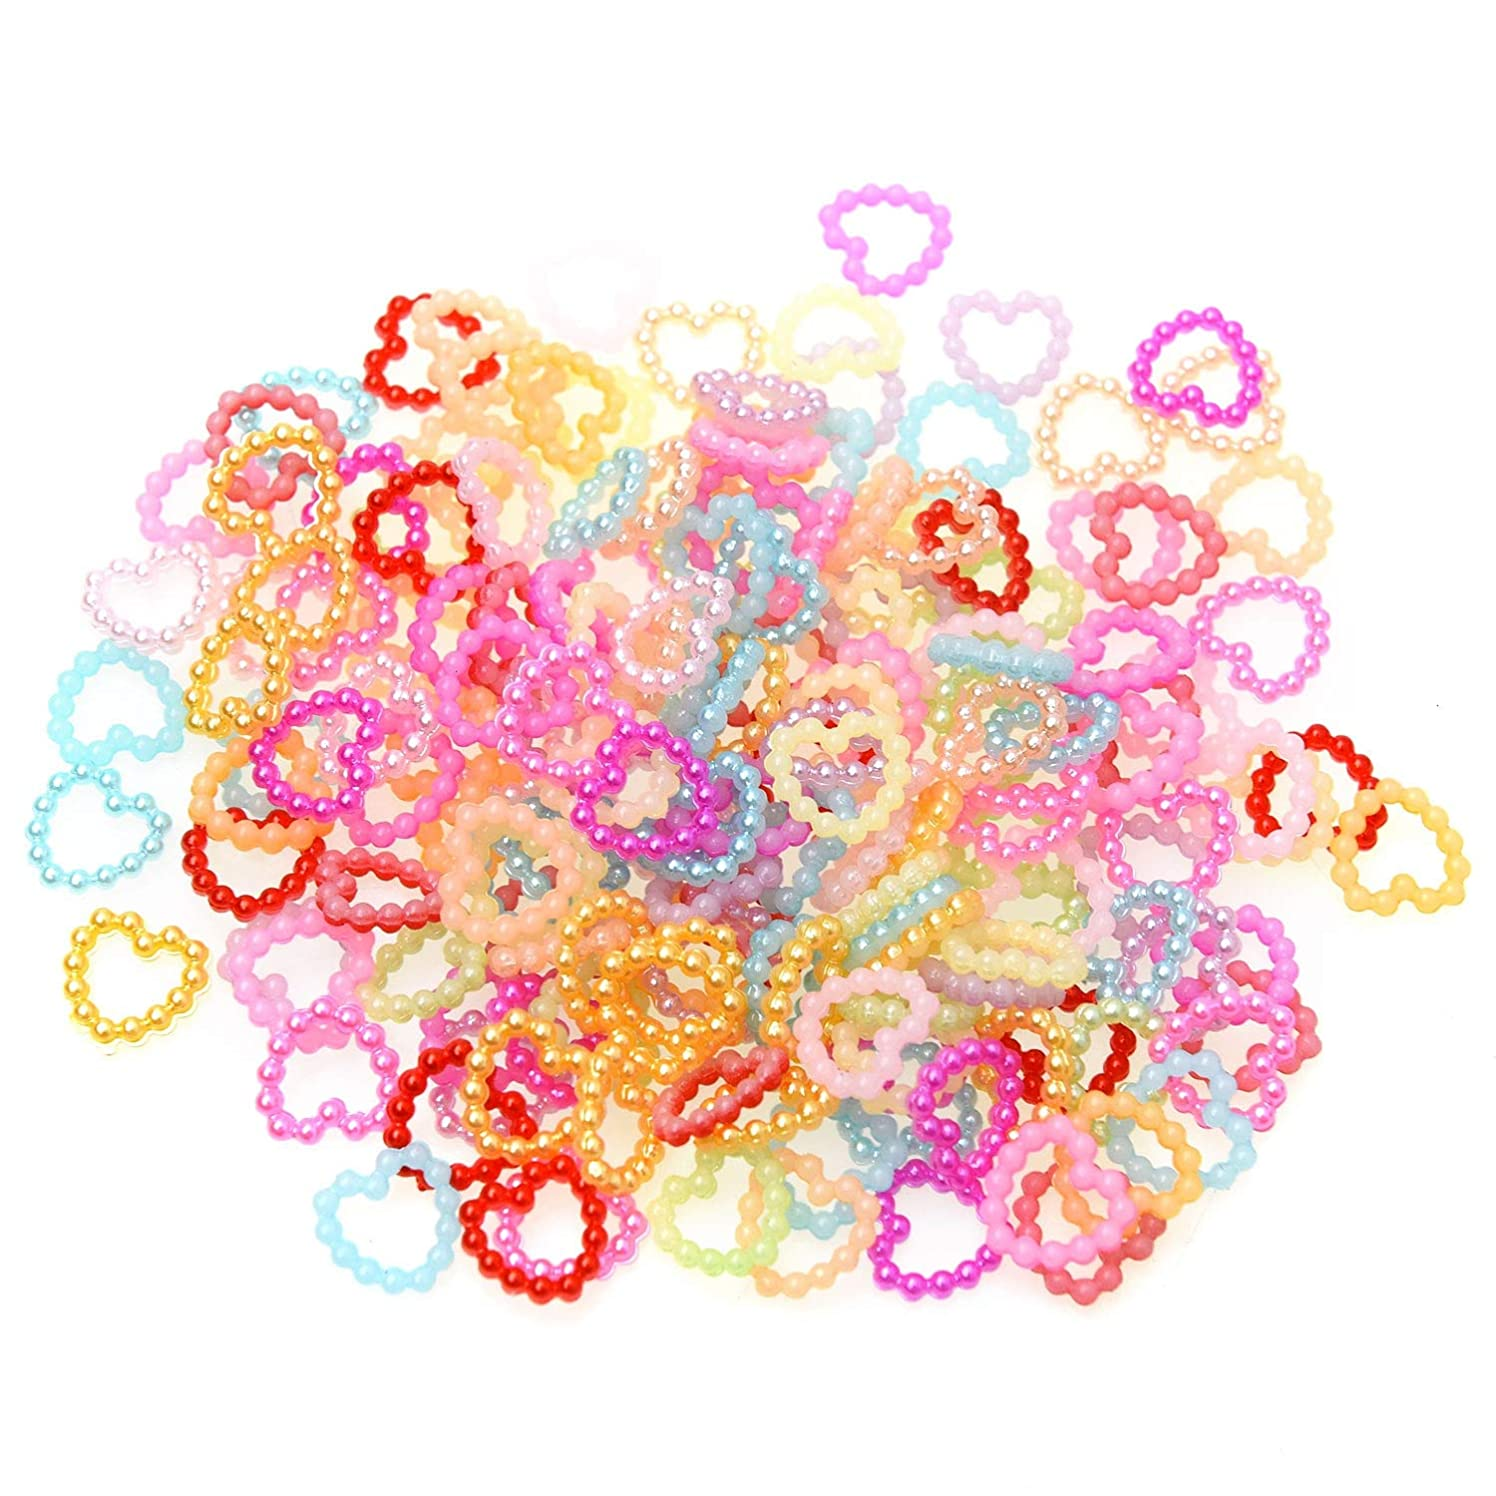 Monrocco 200 Pcs Mixed Color Heart Pearl Resin Flatback Embellishment Cabochon Beads for DIY Crafts